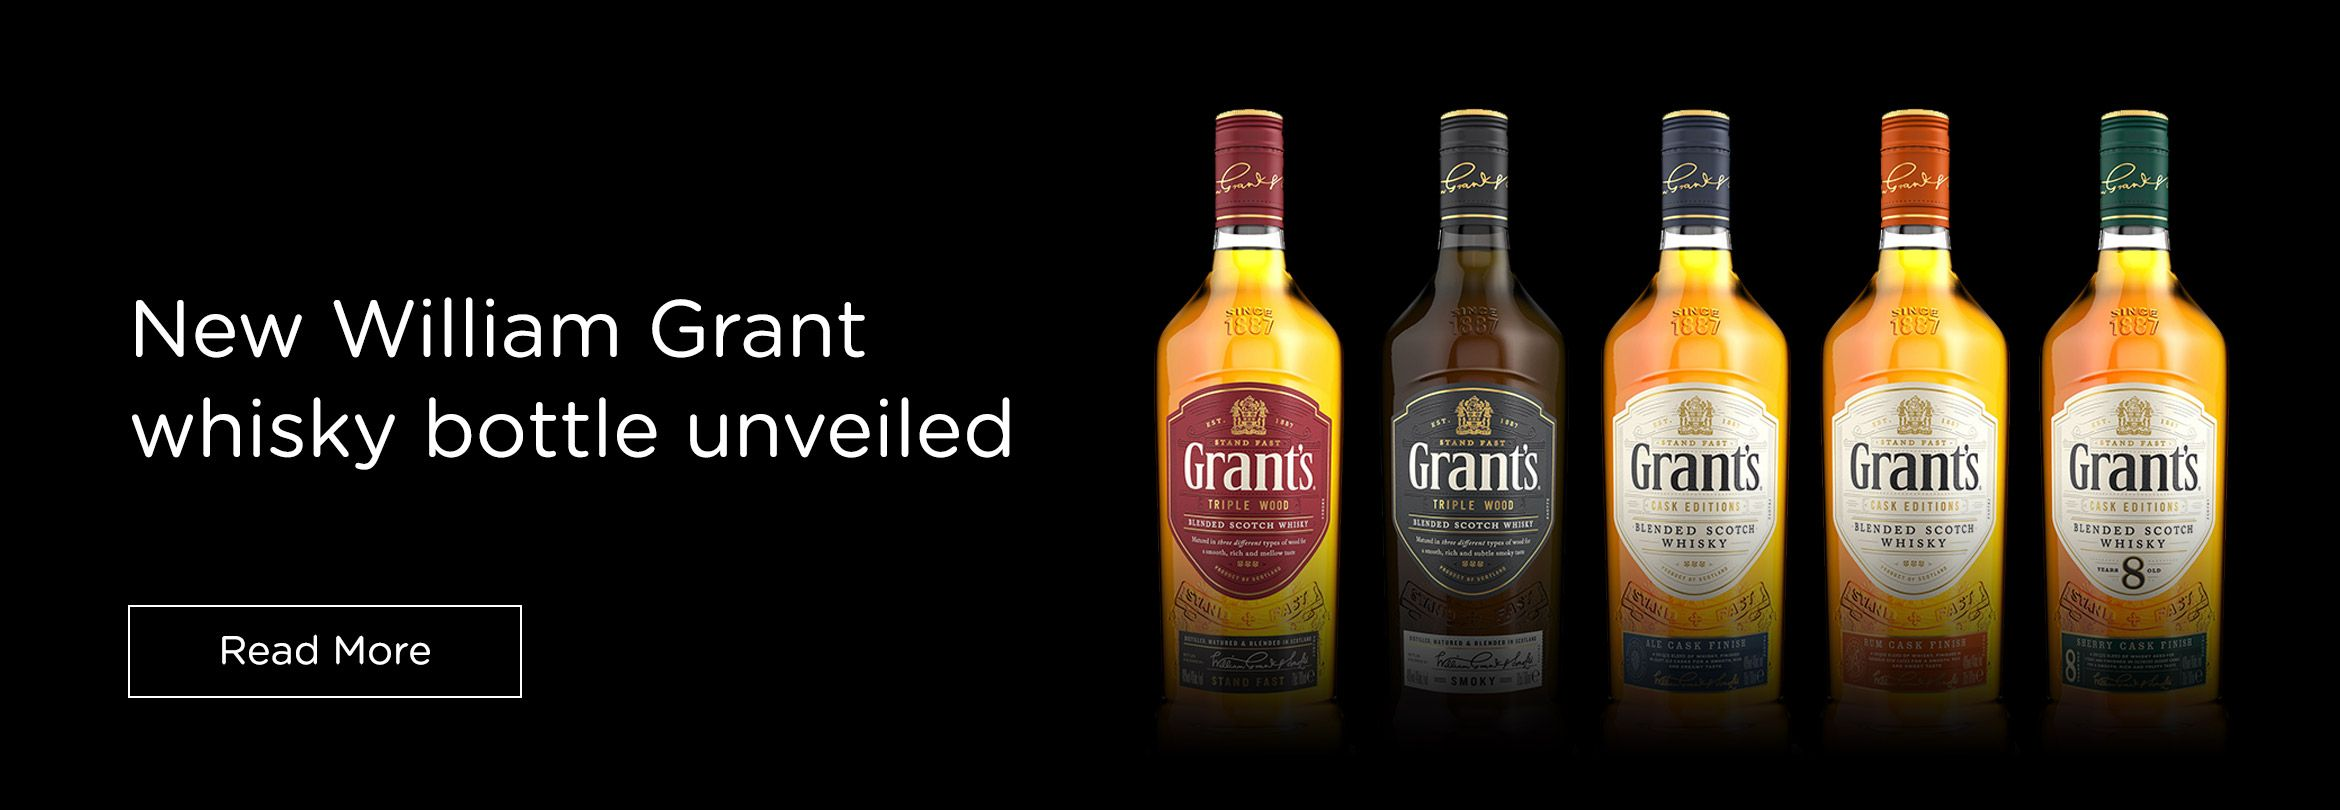 Ardagh Group unveils new William Grant whisky bottle for worldwide relaunch